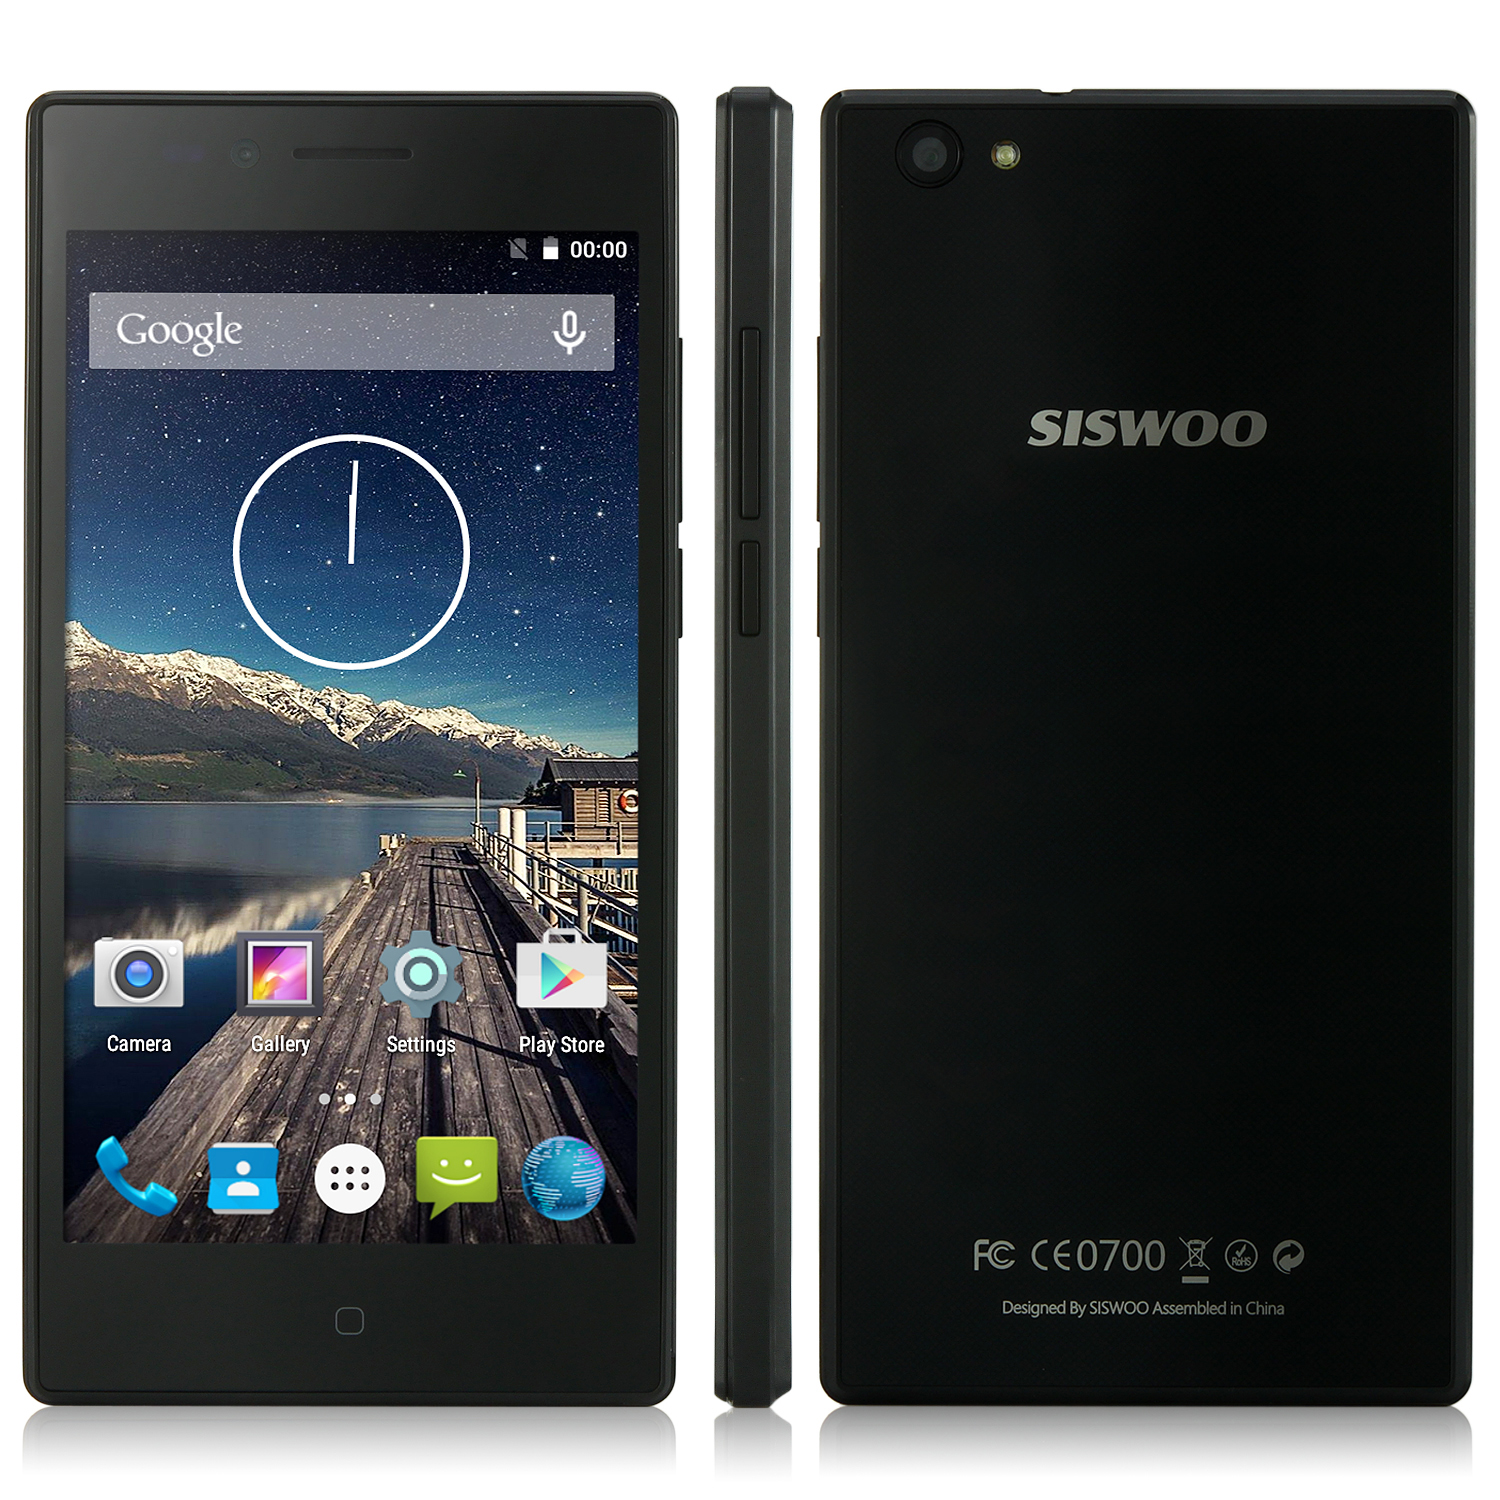 SISWOO Chocolate A5 Smartphone 4G 64bit Android 5.1 5.0 Inch IPS Screen 1GB 8GB- Black